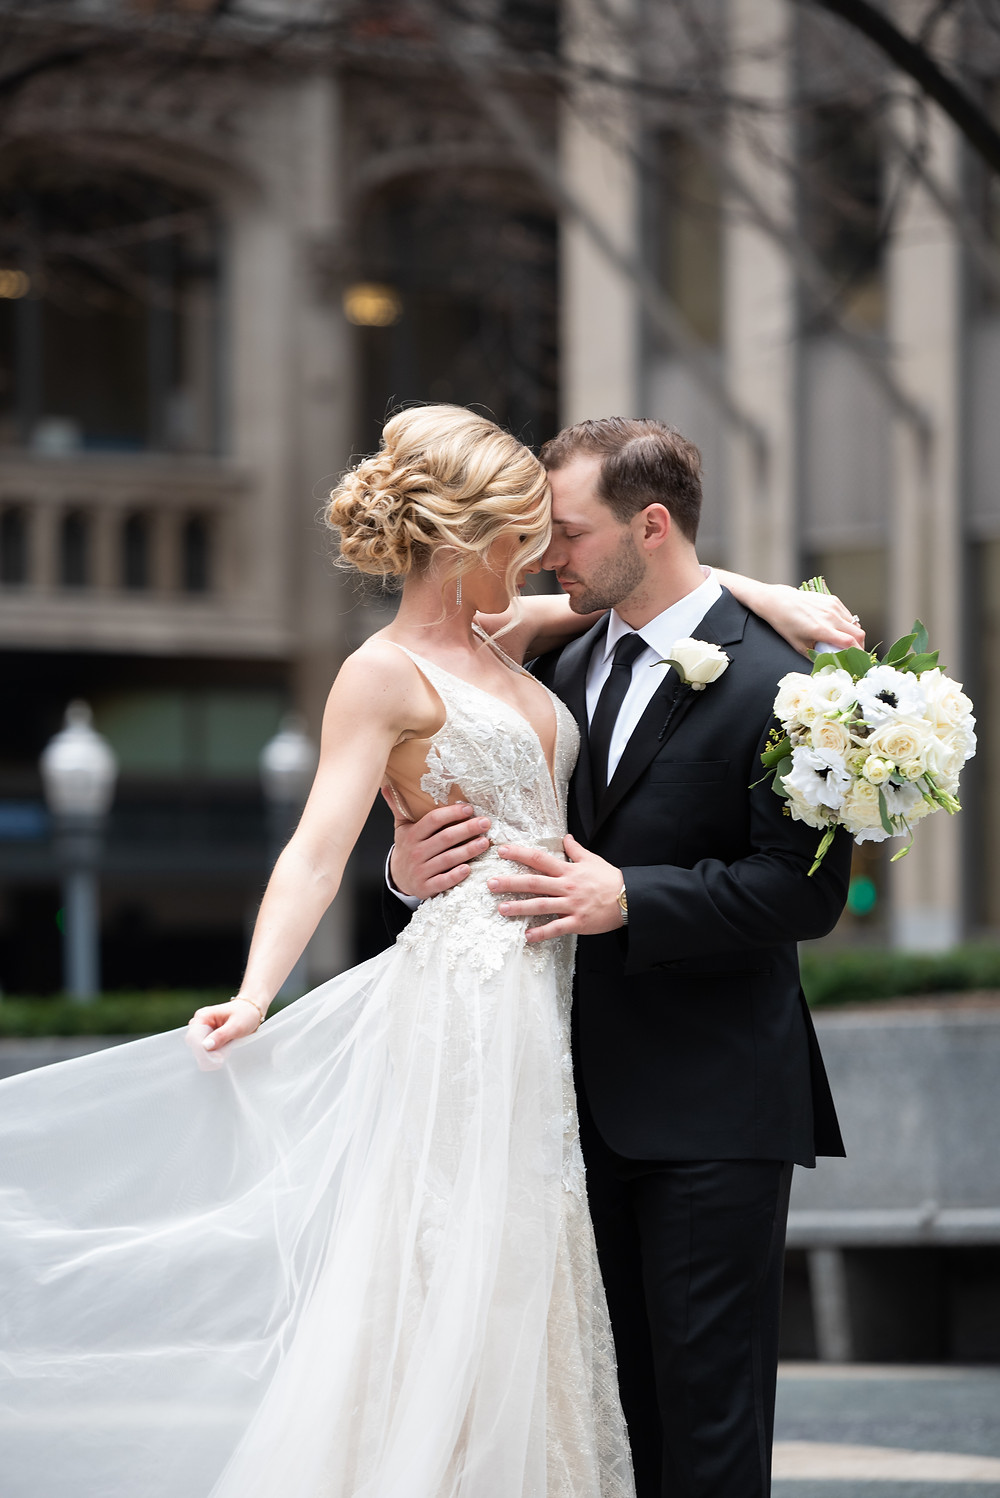 Elegant bride and groom photography in Mellon Square, Pittsburgh